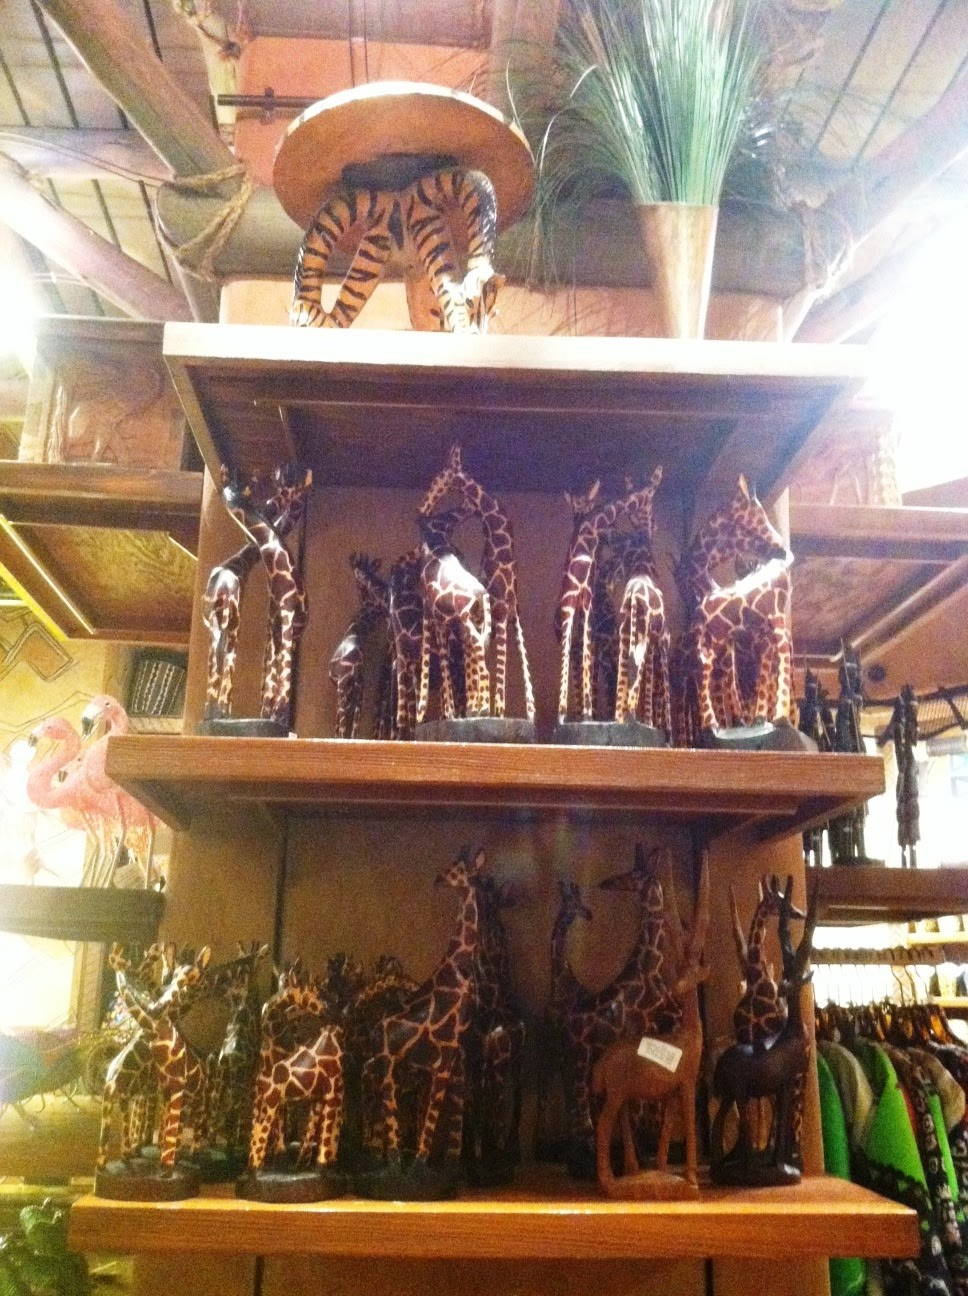 Giraffe figurines at Animal Kingdom Lodge